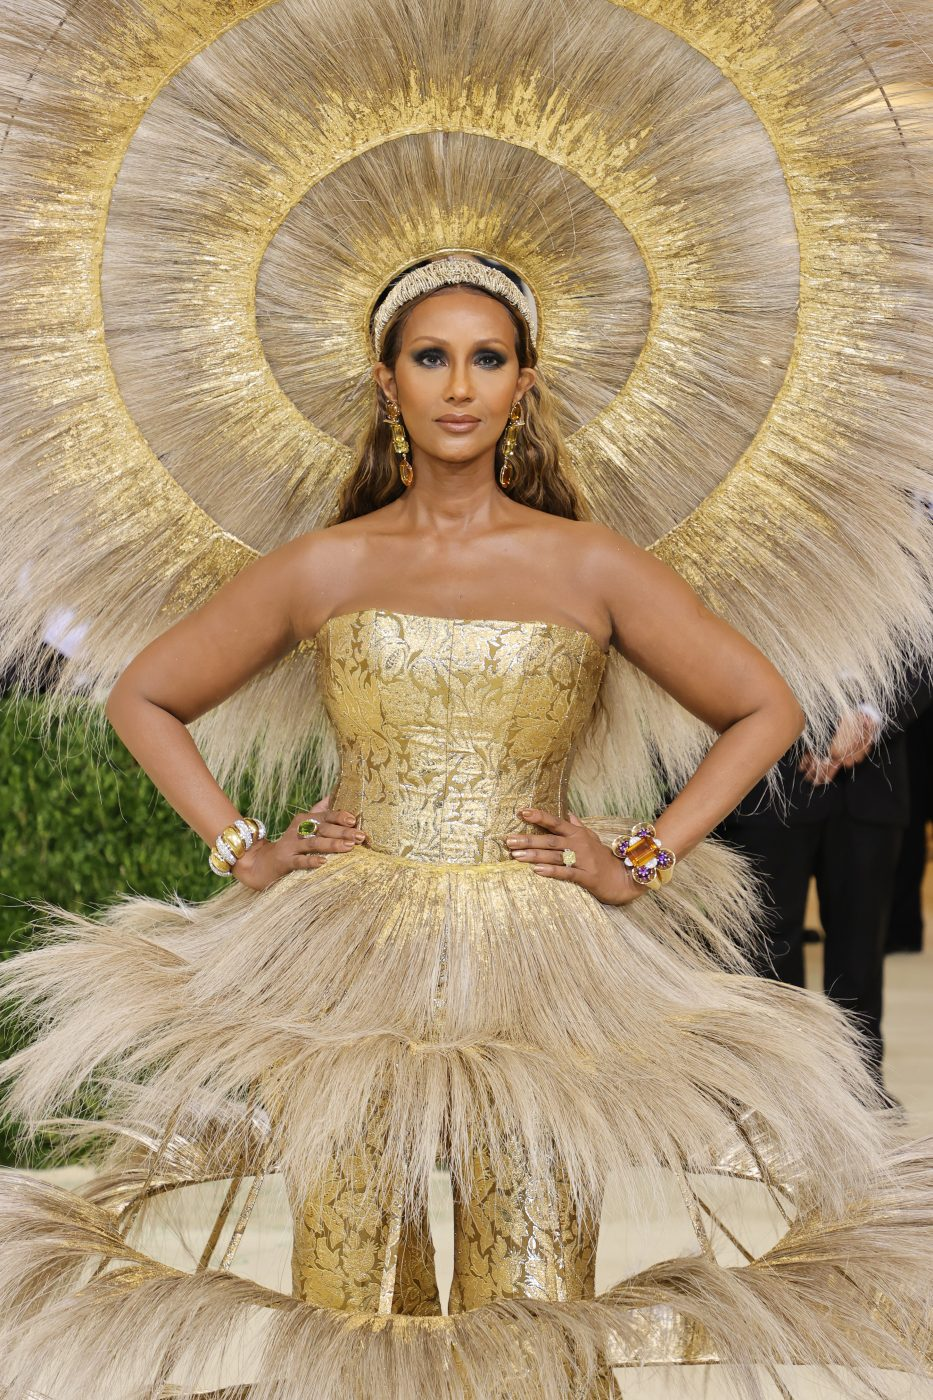 Iman accessorized her Harris Reed gown and headdress with jewelry that included a 13-carat yellow diamond ring by Kwiat